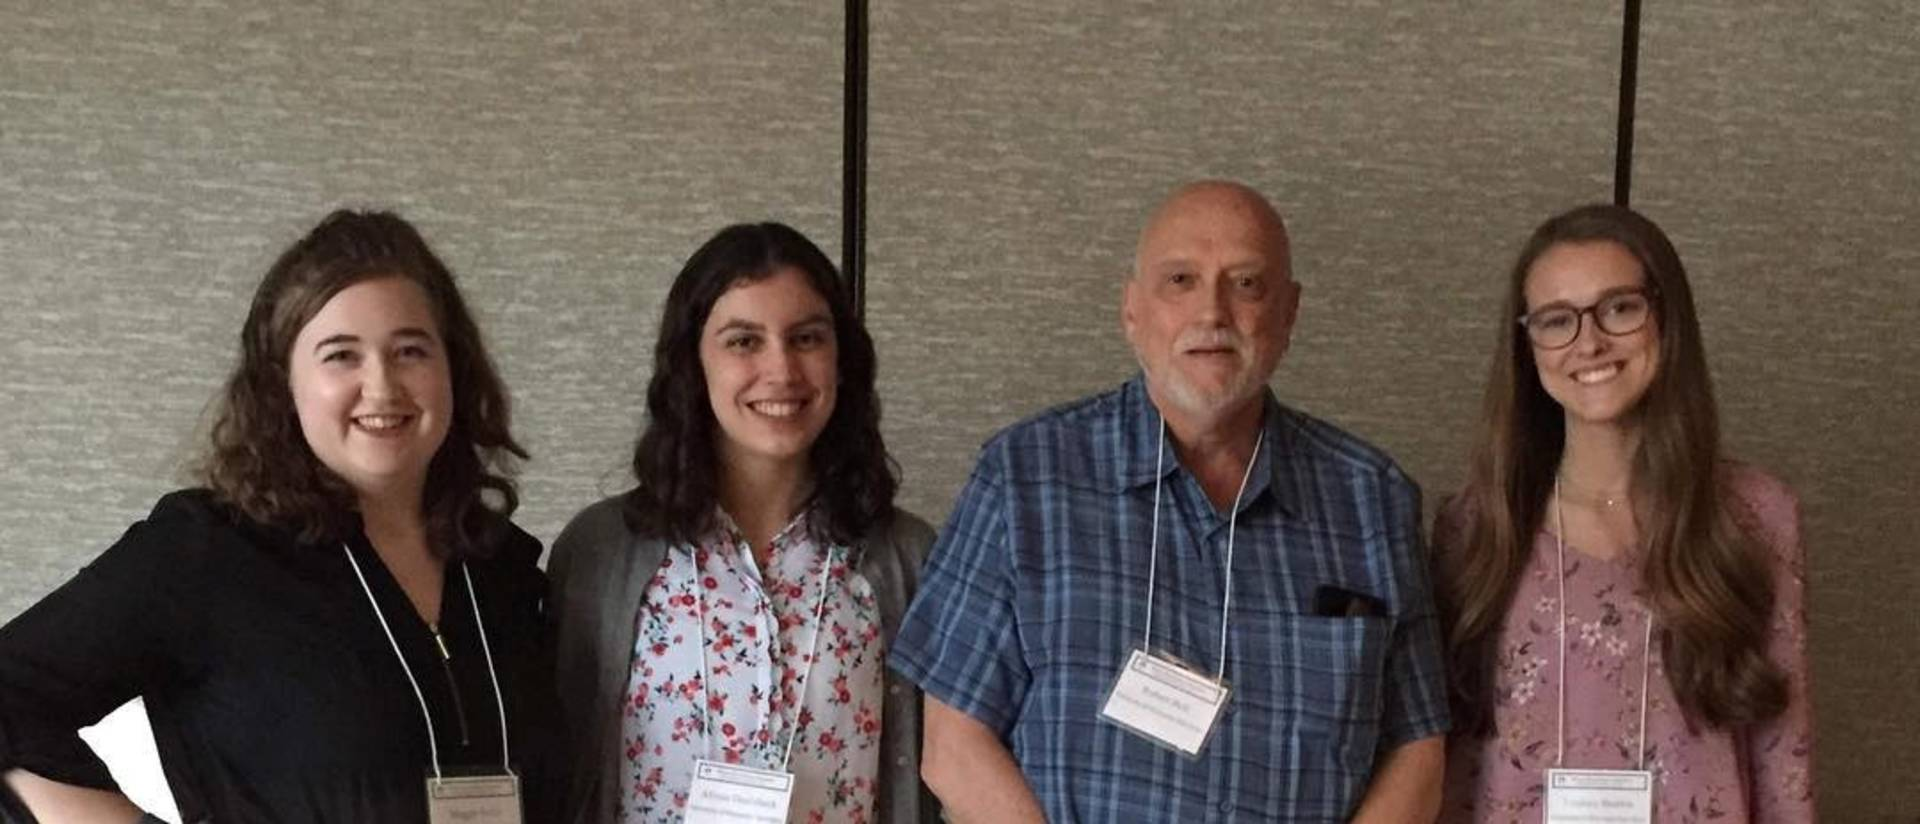 Professor Robert Bell and honors student researchers